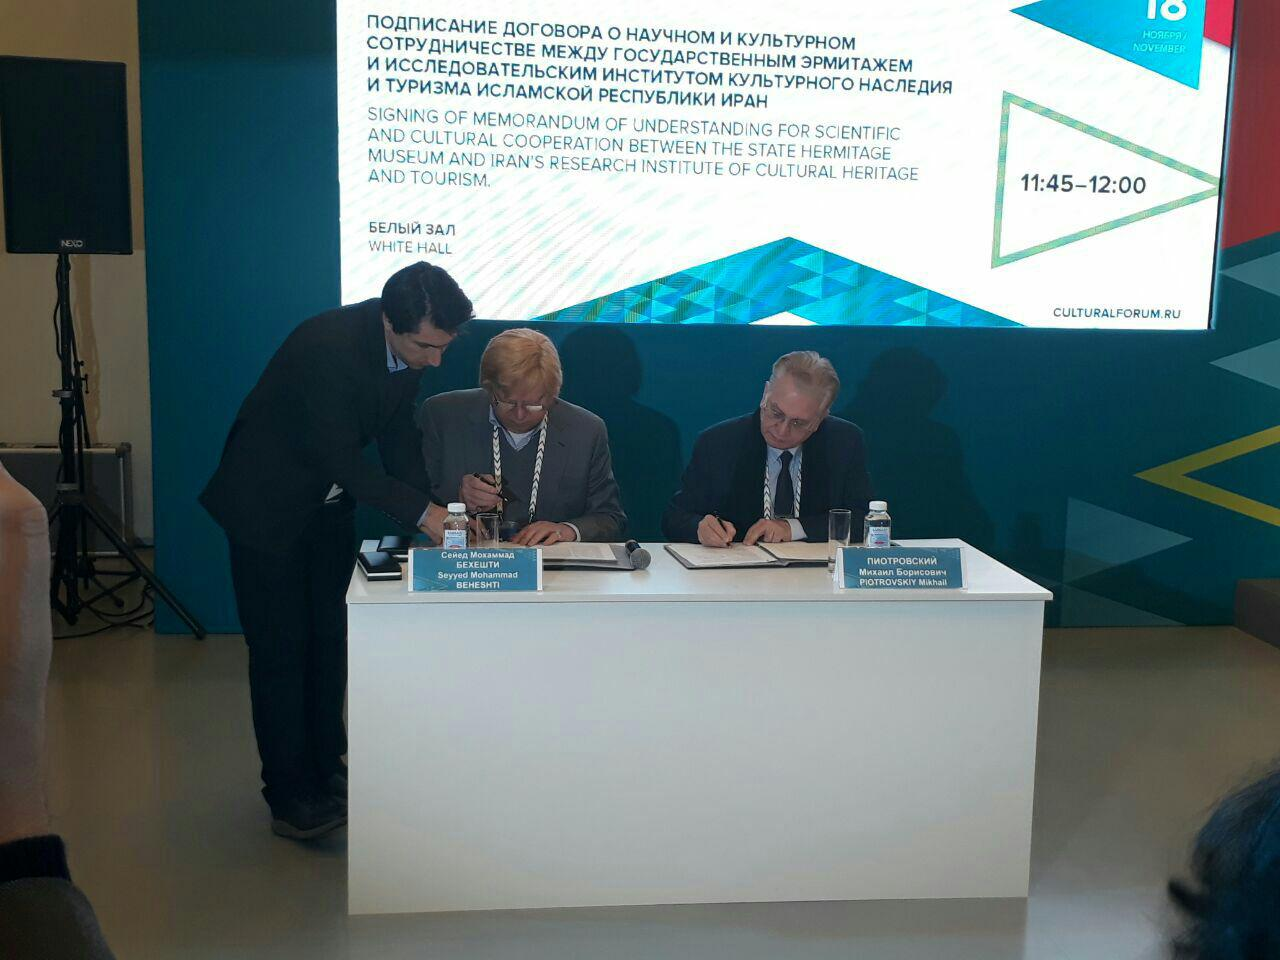 Iran, Russia sign MoU for cultural heritage cooperation